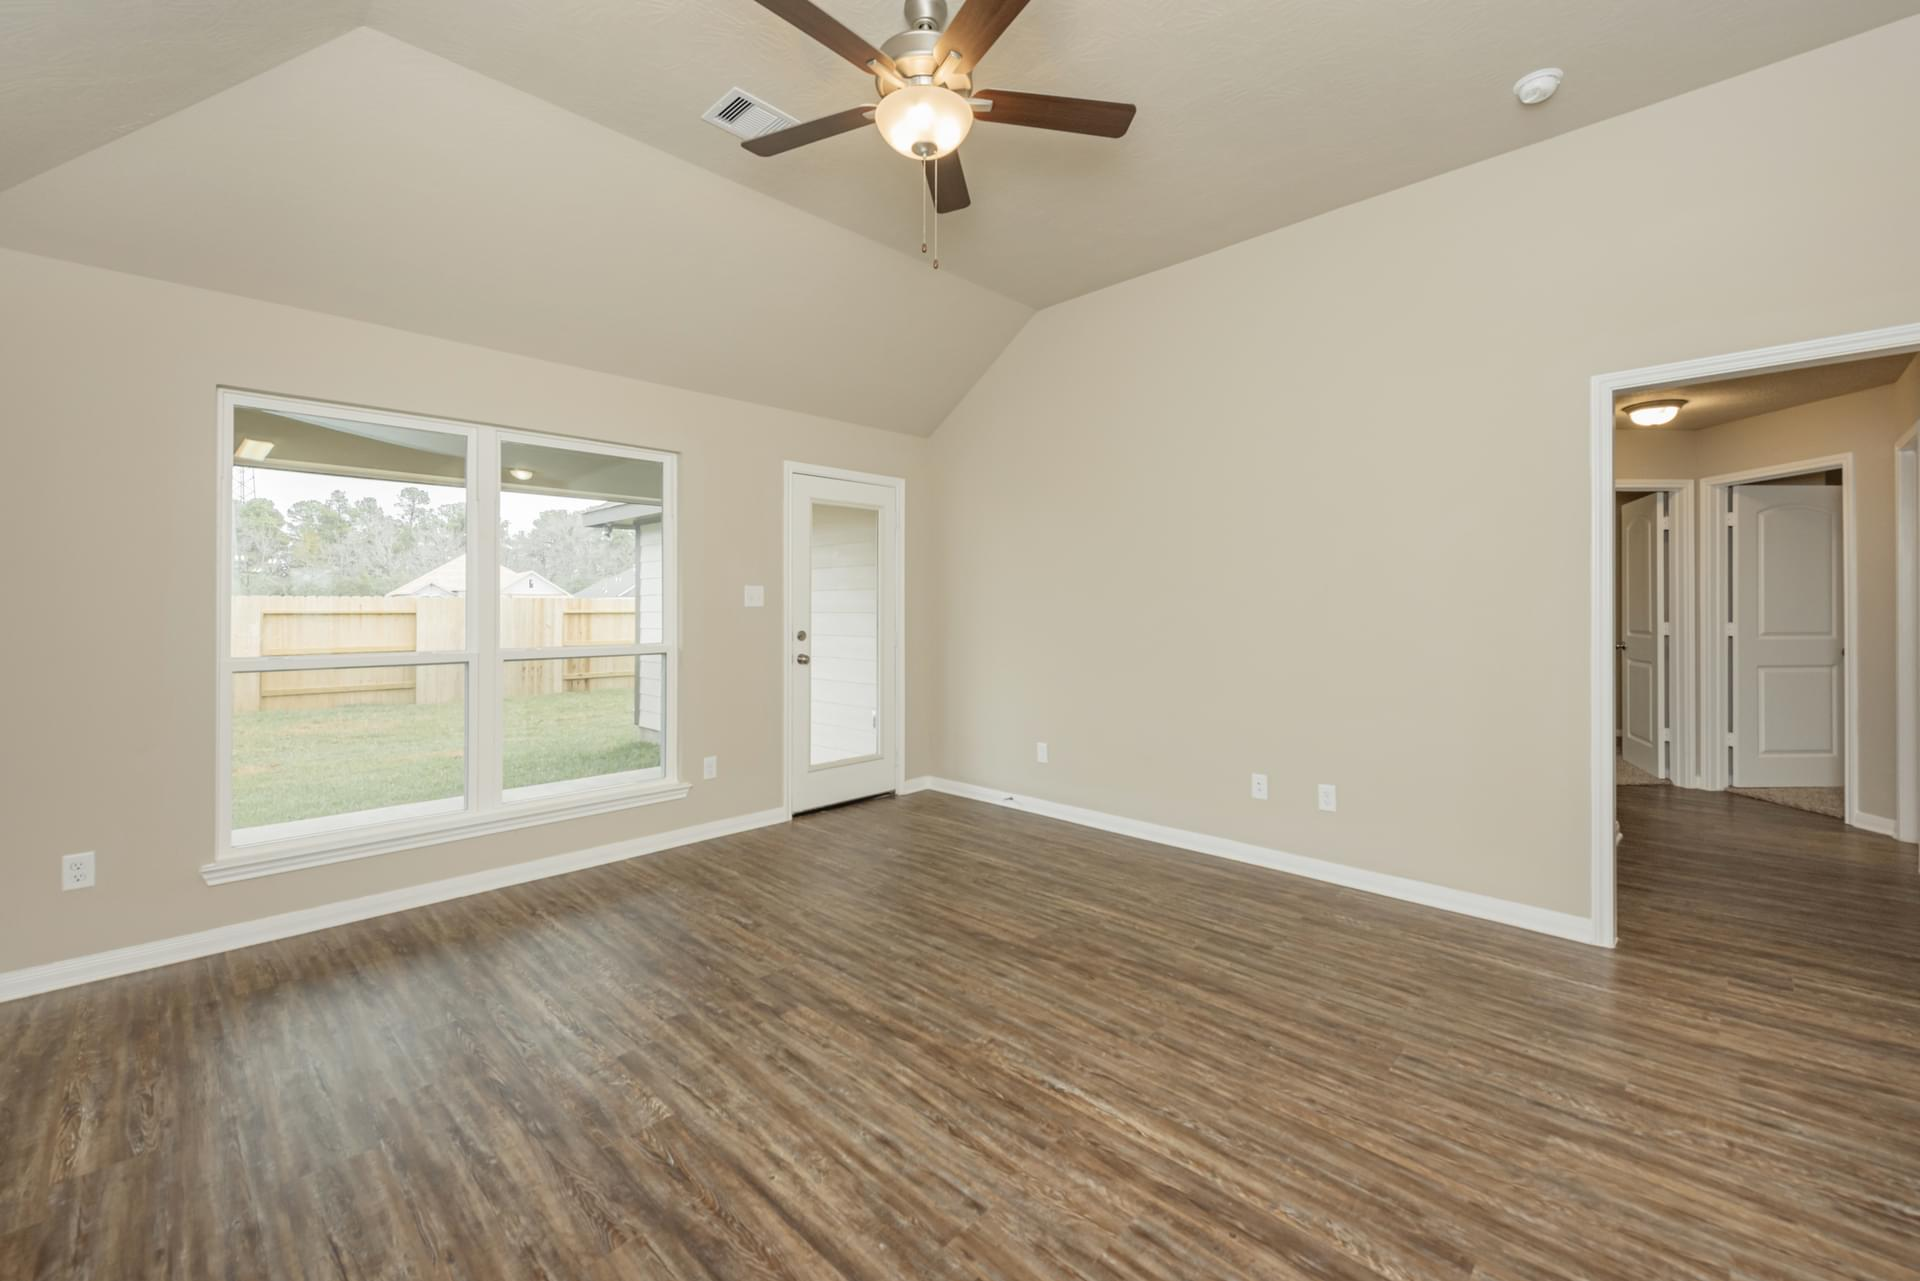 S-1363 Home with 3 Bedrooms